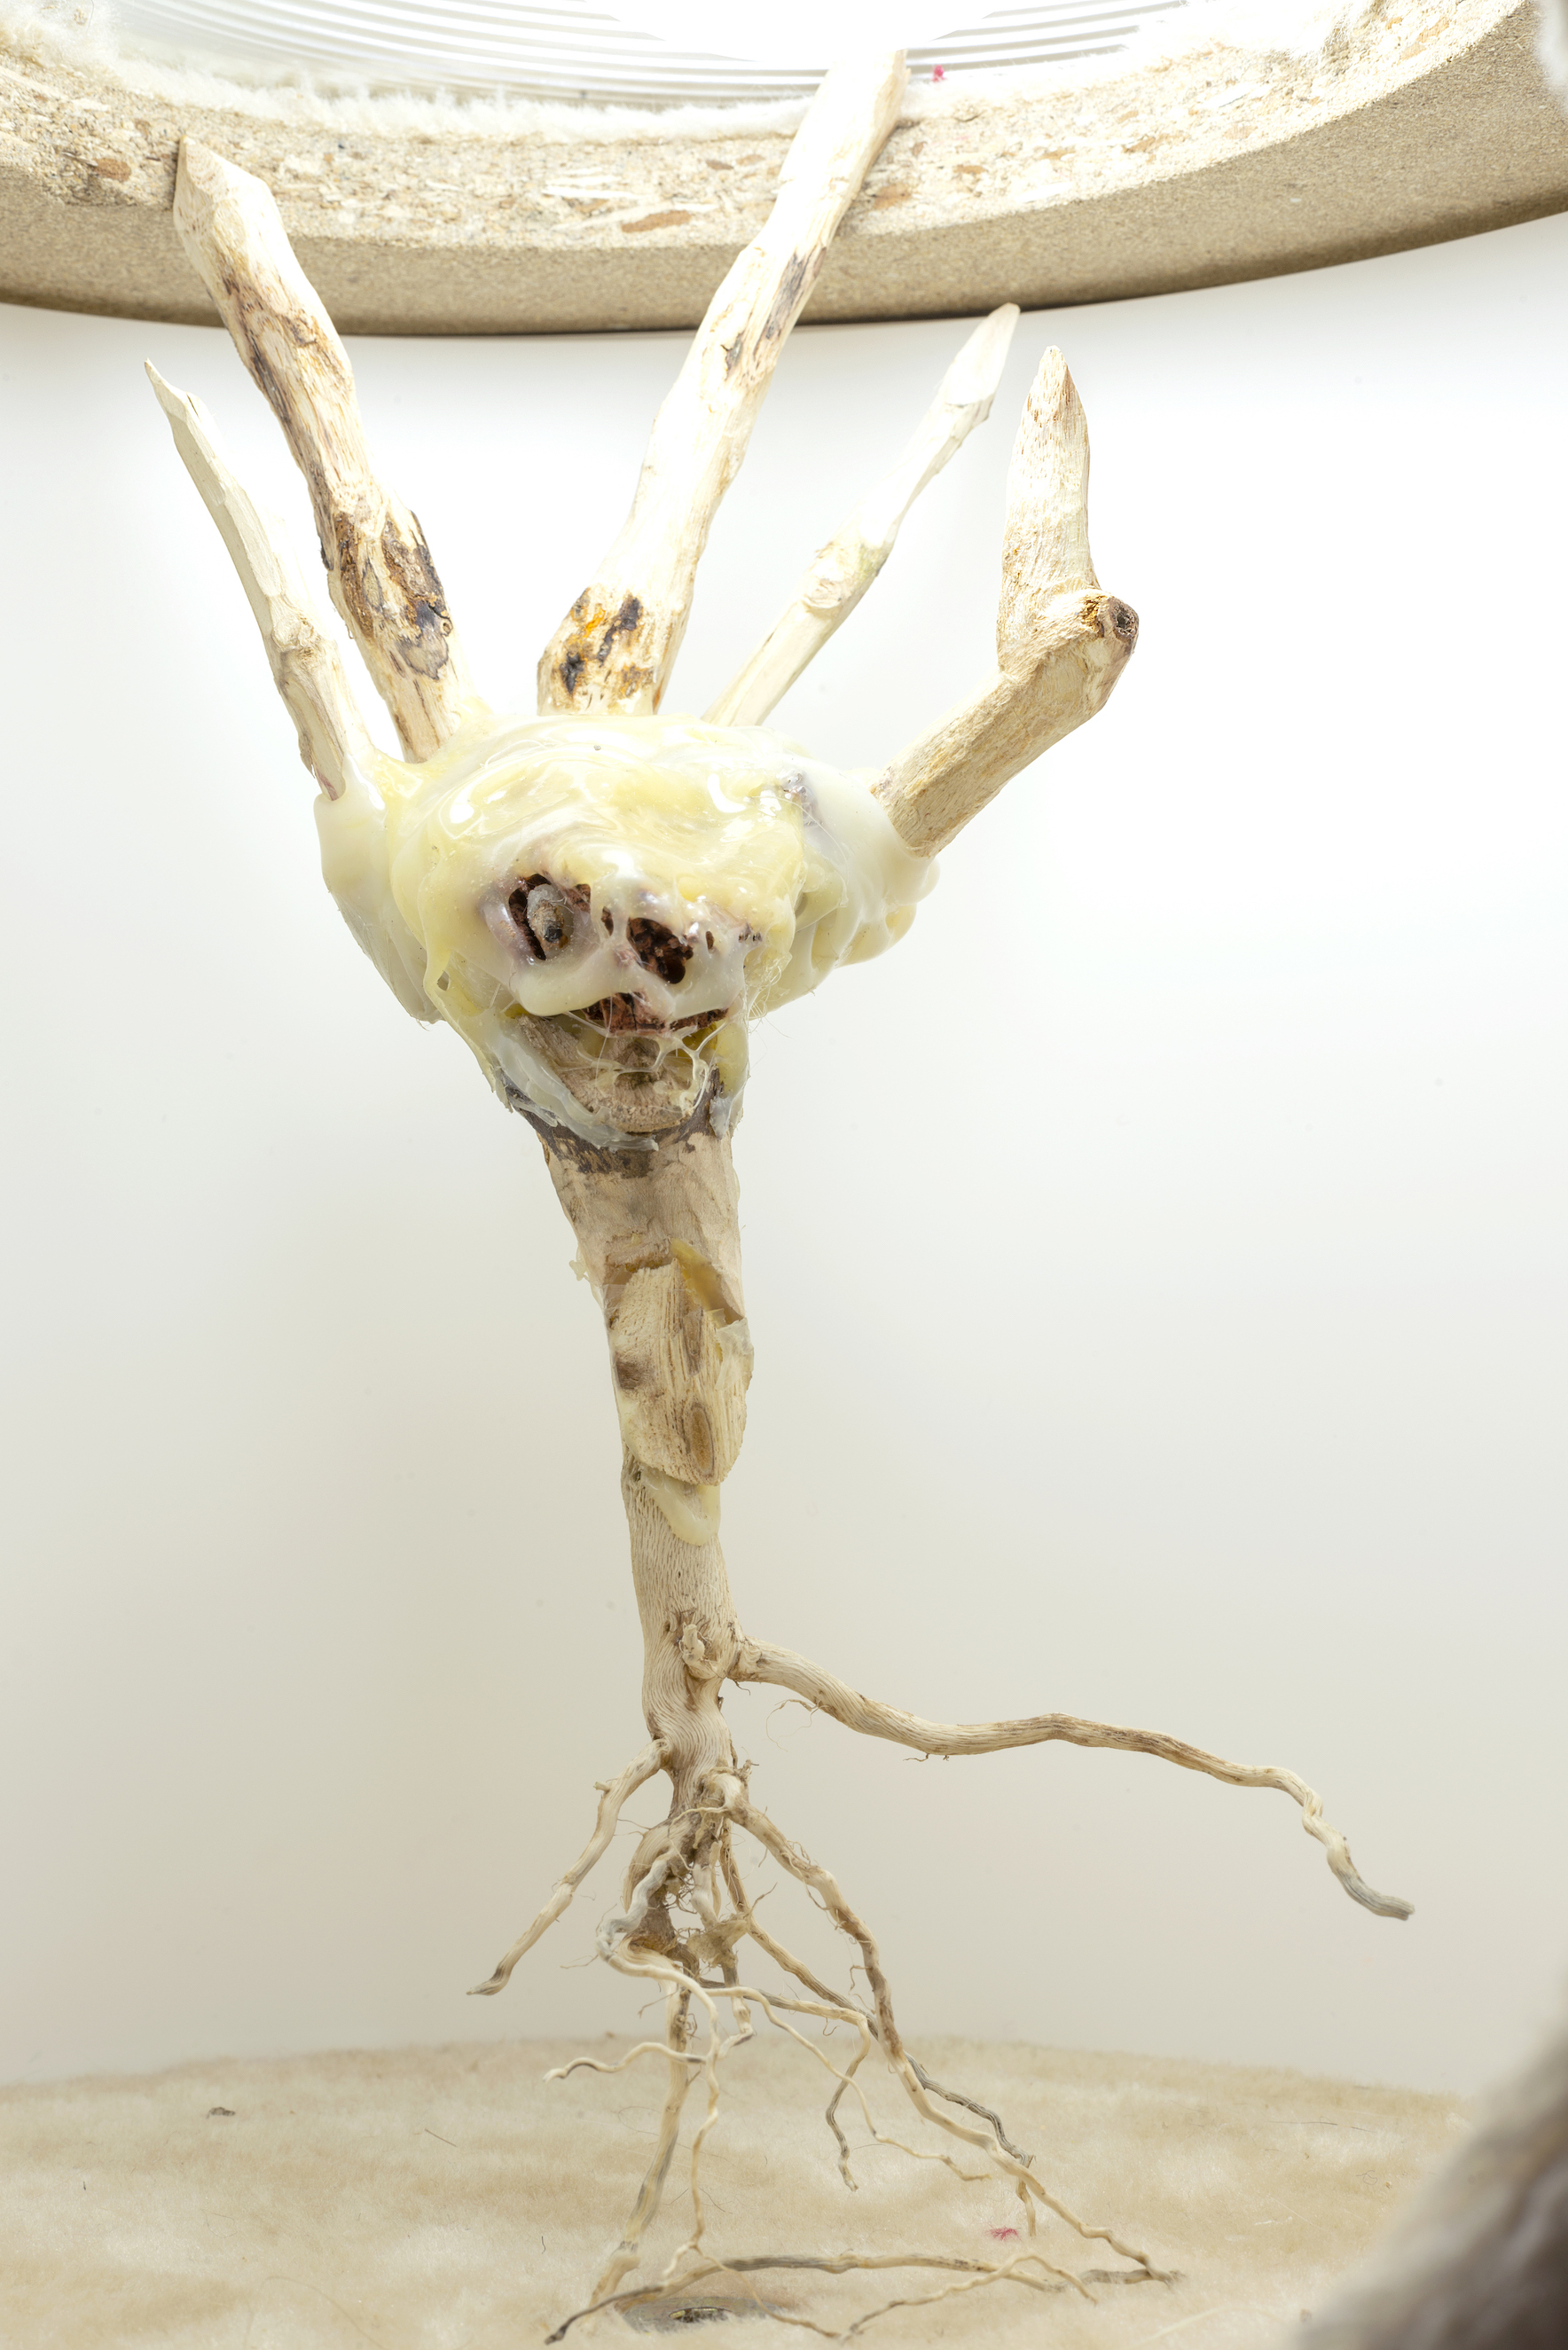 Kira Scerbin,  Baby brain stem , 2019, mixed media, 9 x 5 x 4 inches